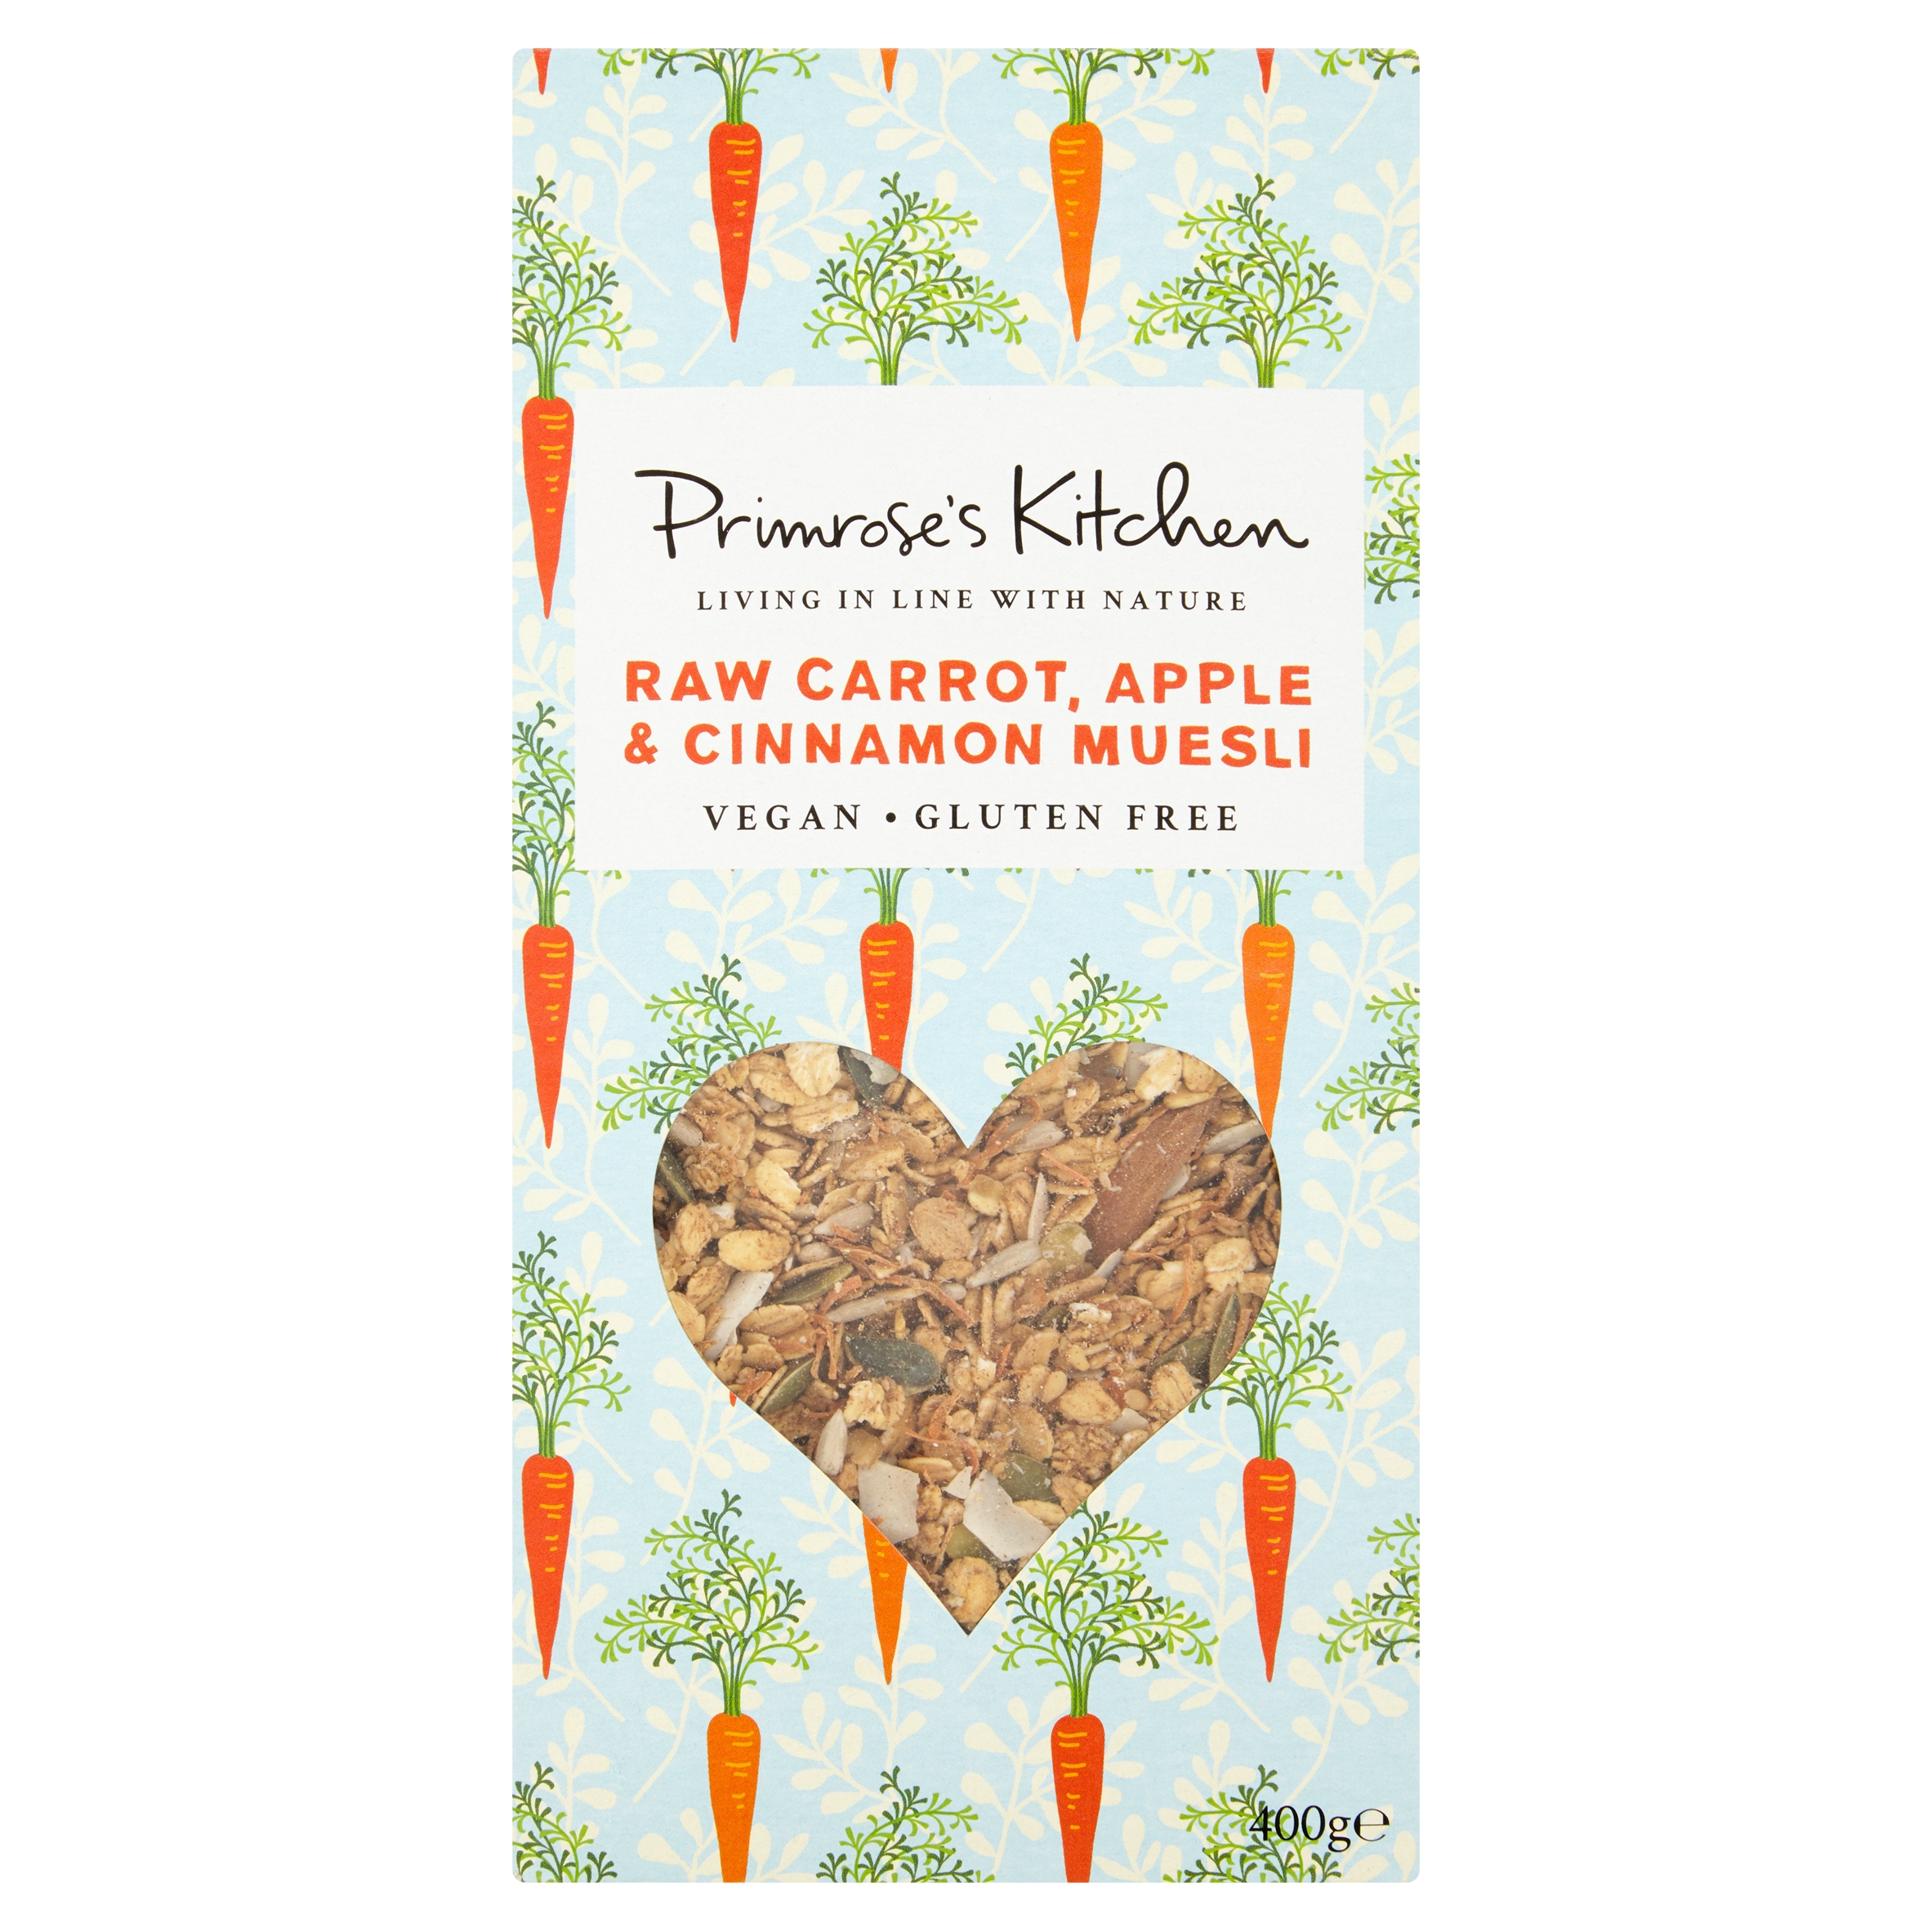 Organic, Vegan, Gluten Free Carrot, Apple And Cinnamon Muesli